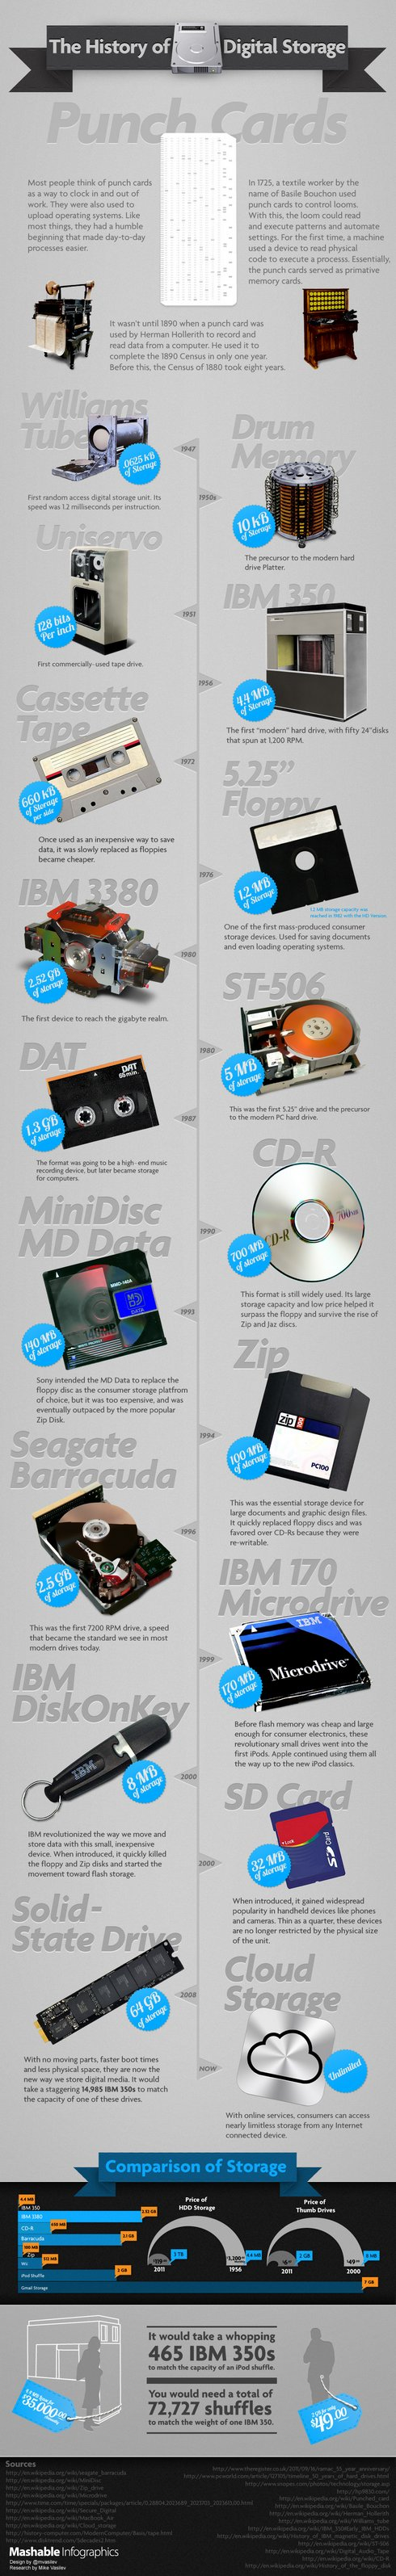 history-digital-storage-mashable-infographics-972